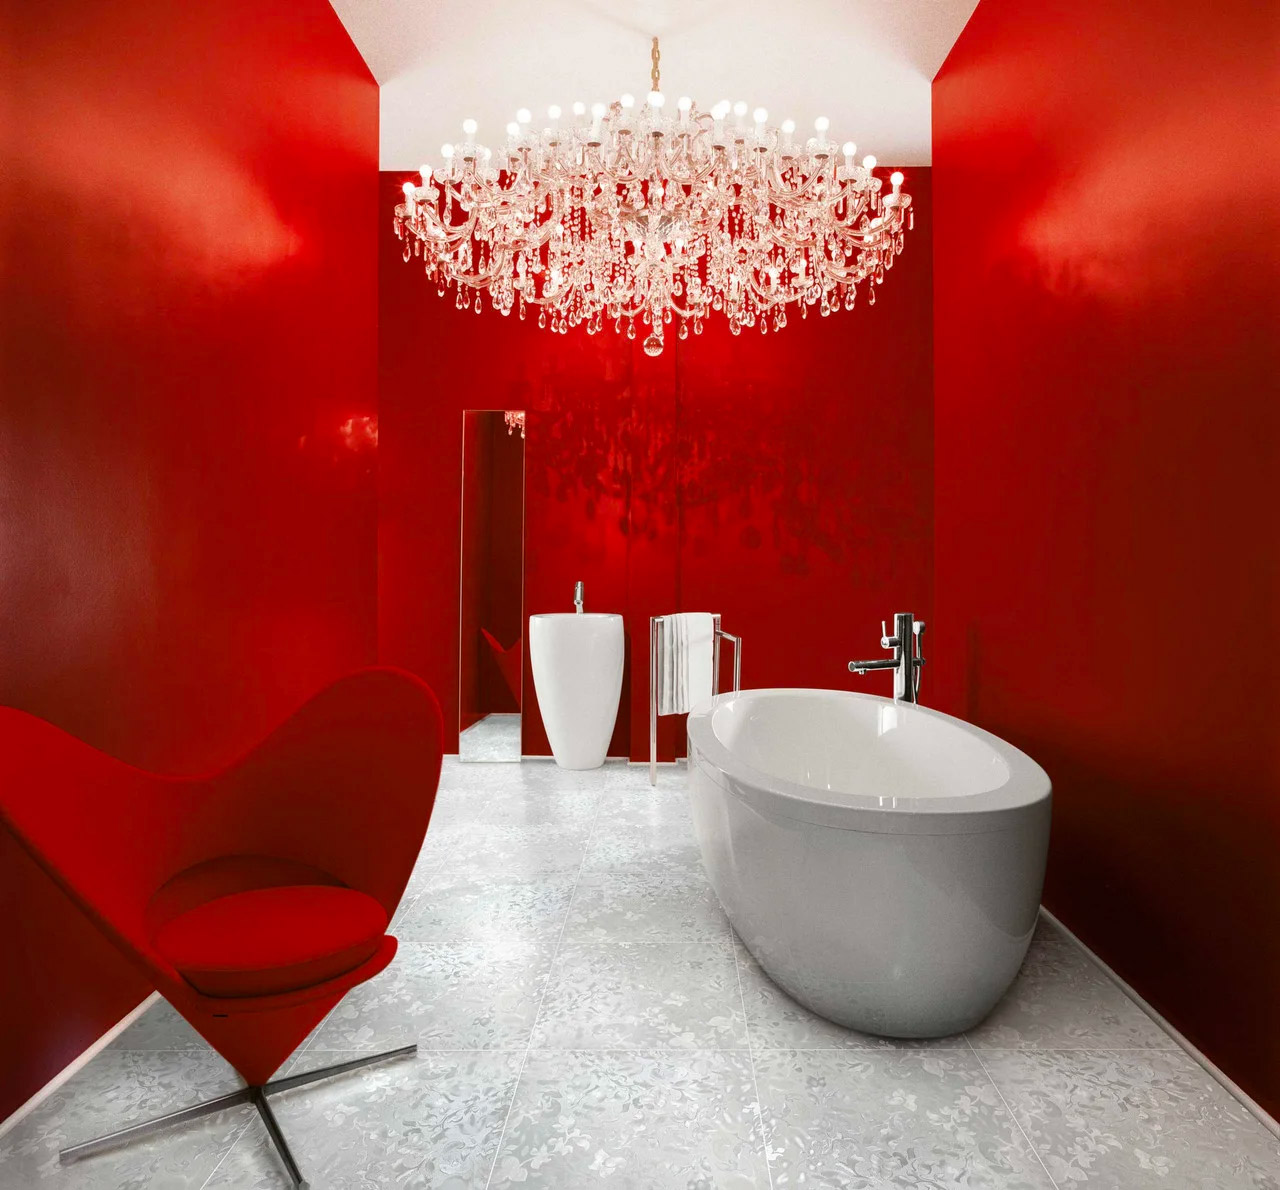 red-and-white-bathroom-600x558.jpg